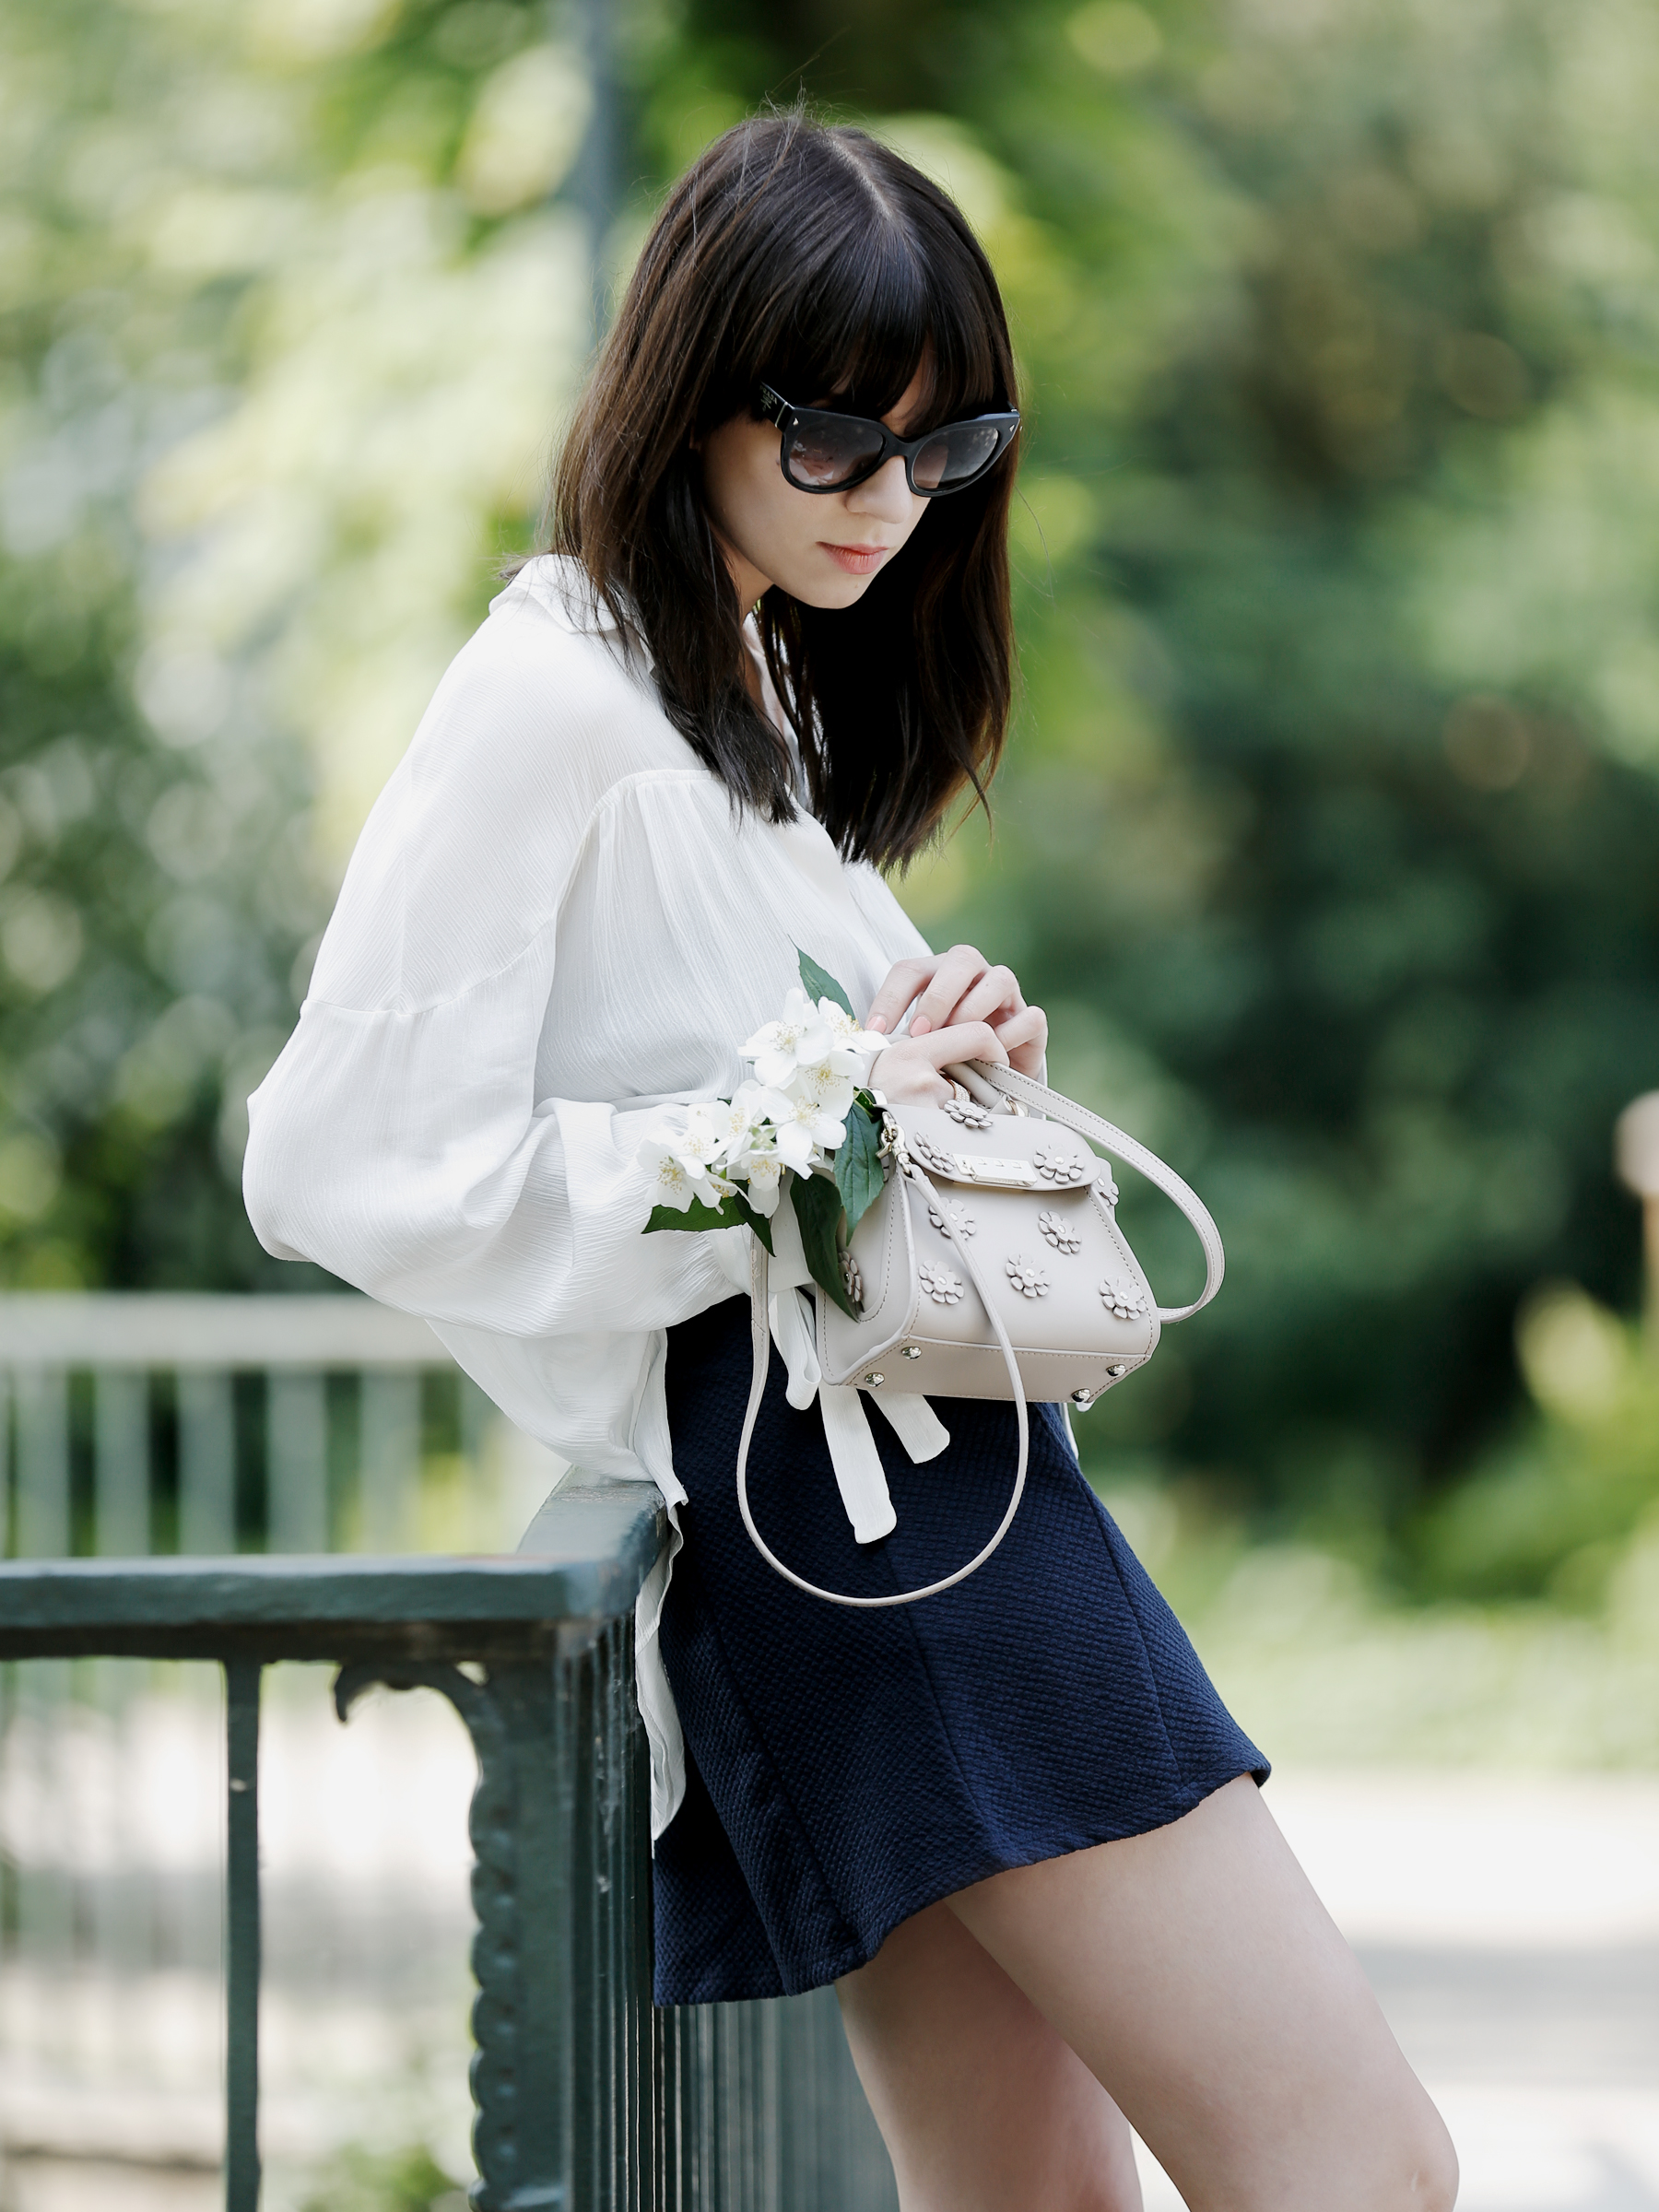 zac posen floral nude handbag designer luxury shopbop gina tricot skirt sailor wide hippie blouse mango white prada sunglasses cats & dogs fashion blog germany ricarda schernus ootd fashionblogger 2